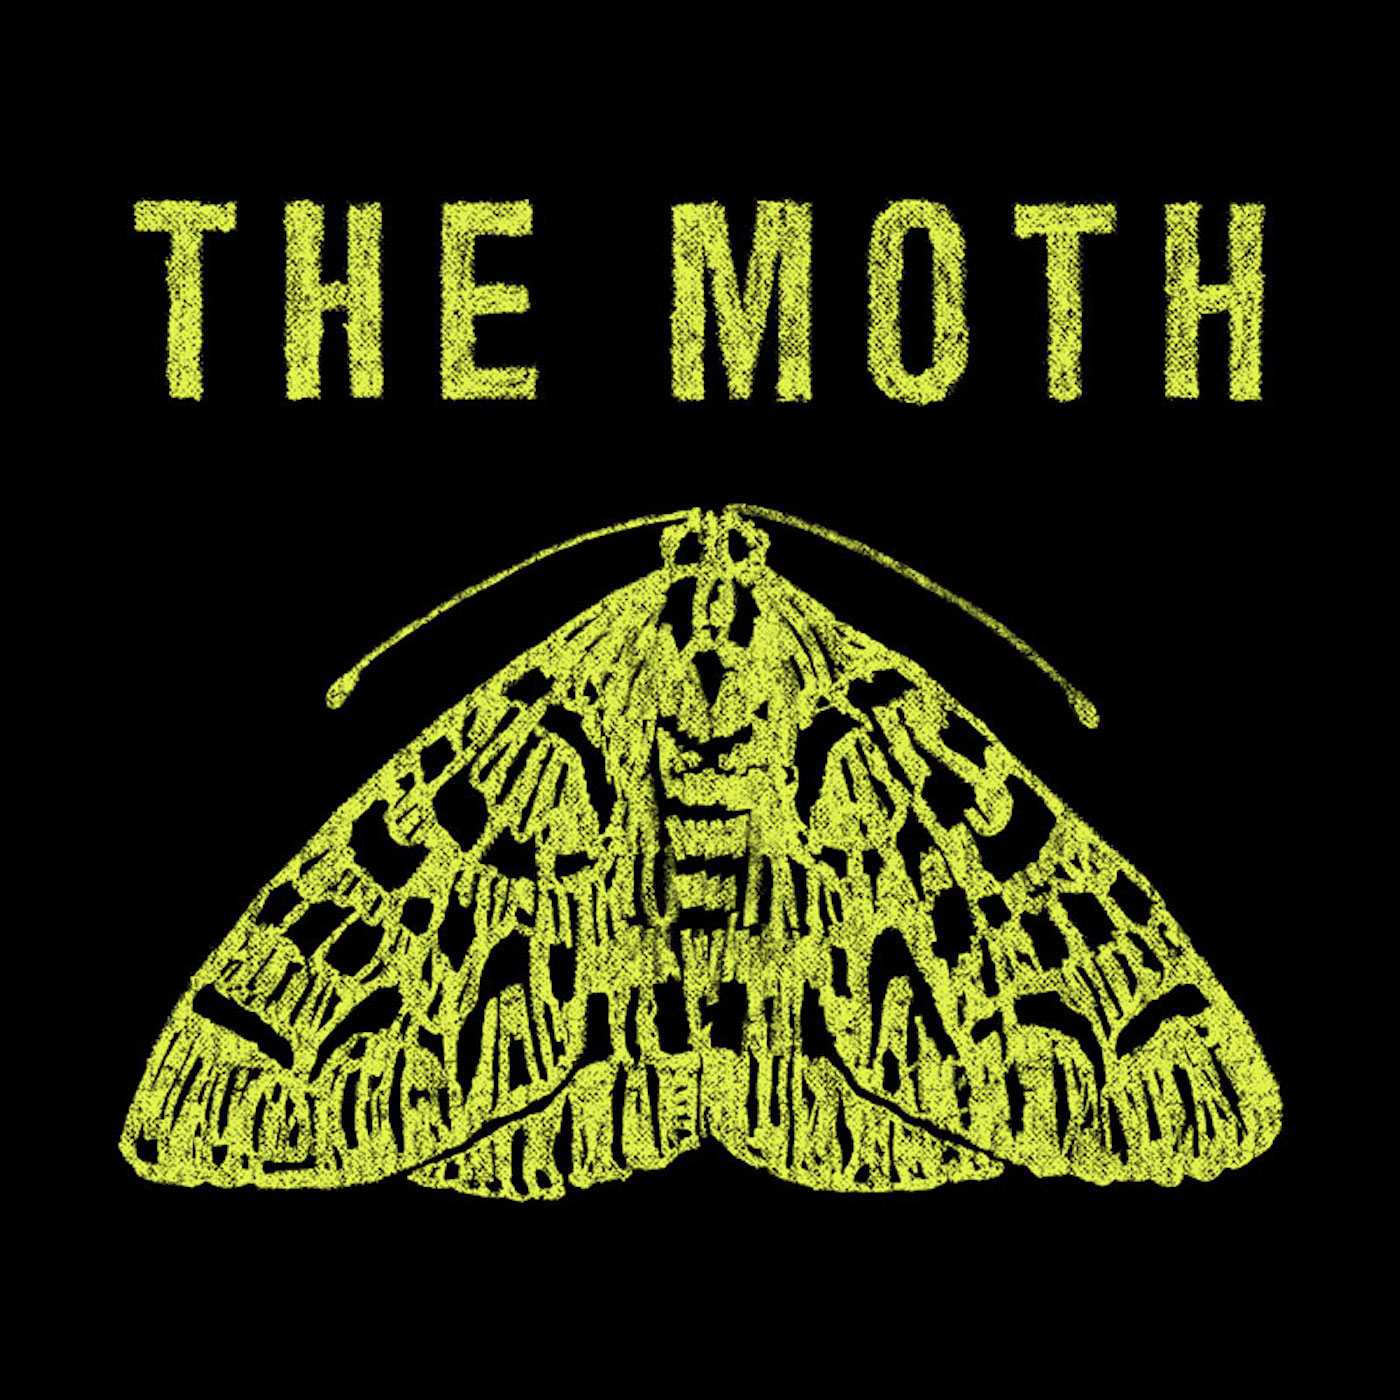 The Moth Radio Hour: A Bust, a Candy Bar, and Chad Everett